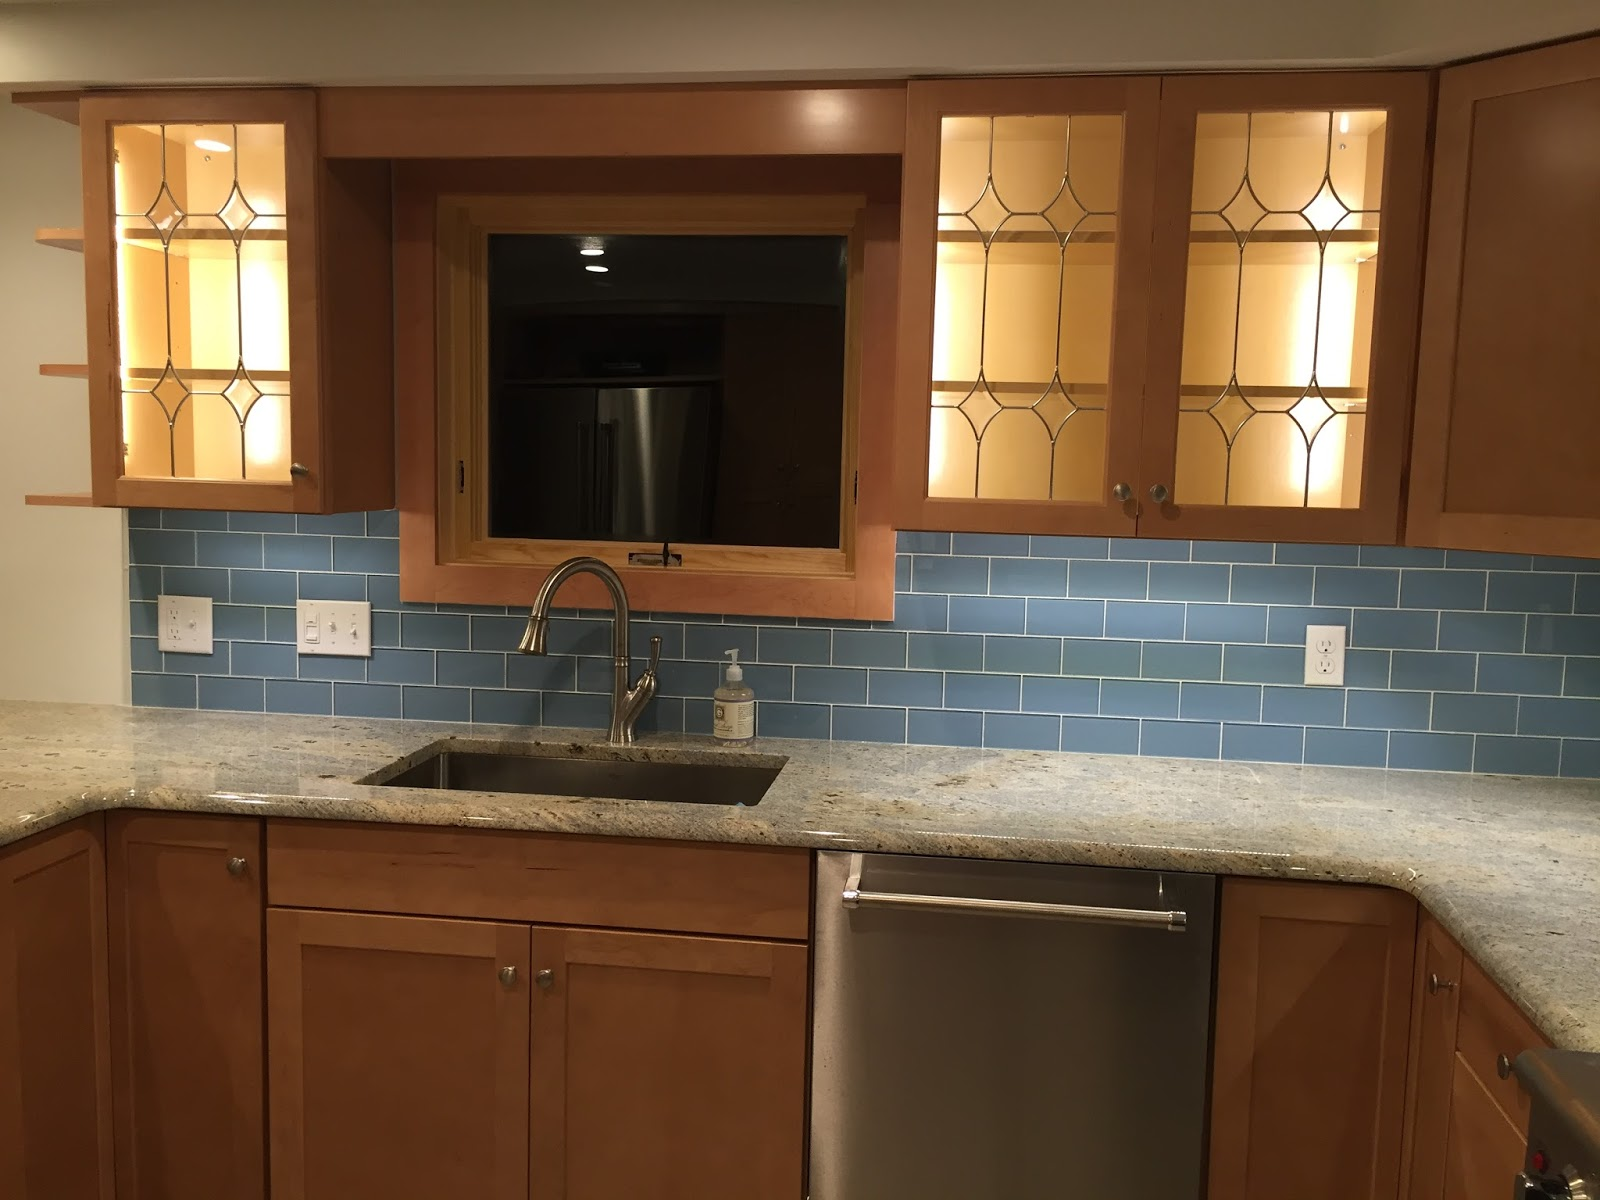 QuarDecor Before and After Kitchen Makeover Blue Glass Tile and